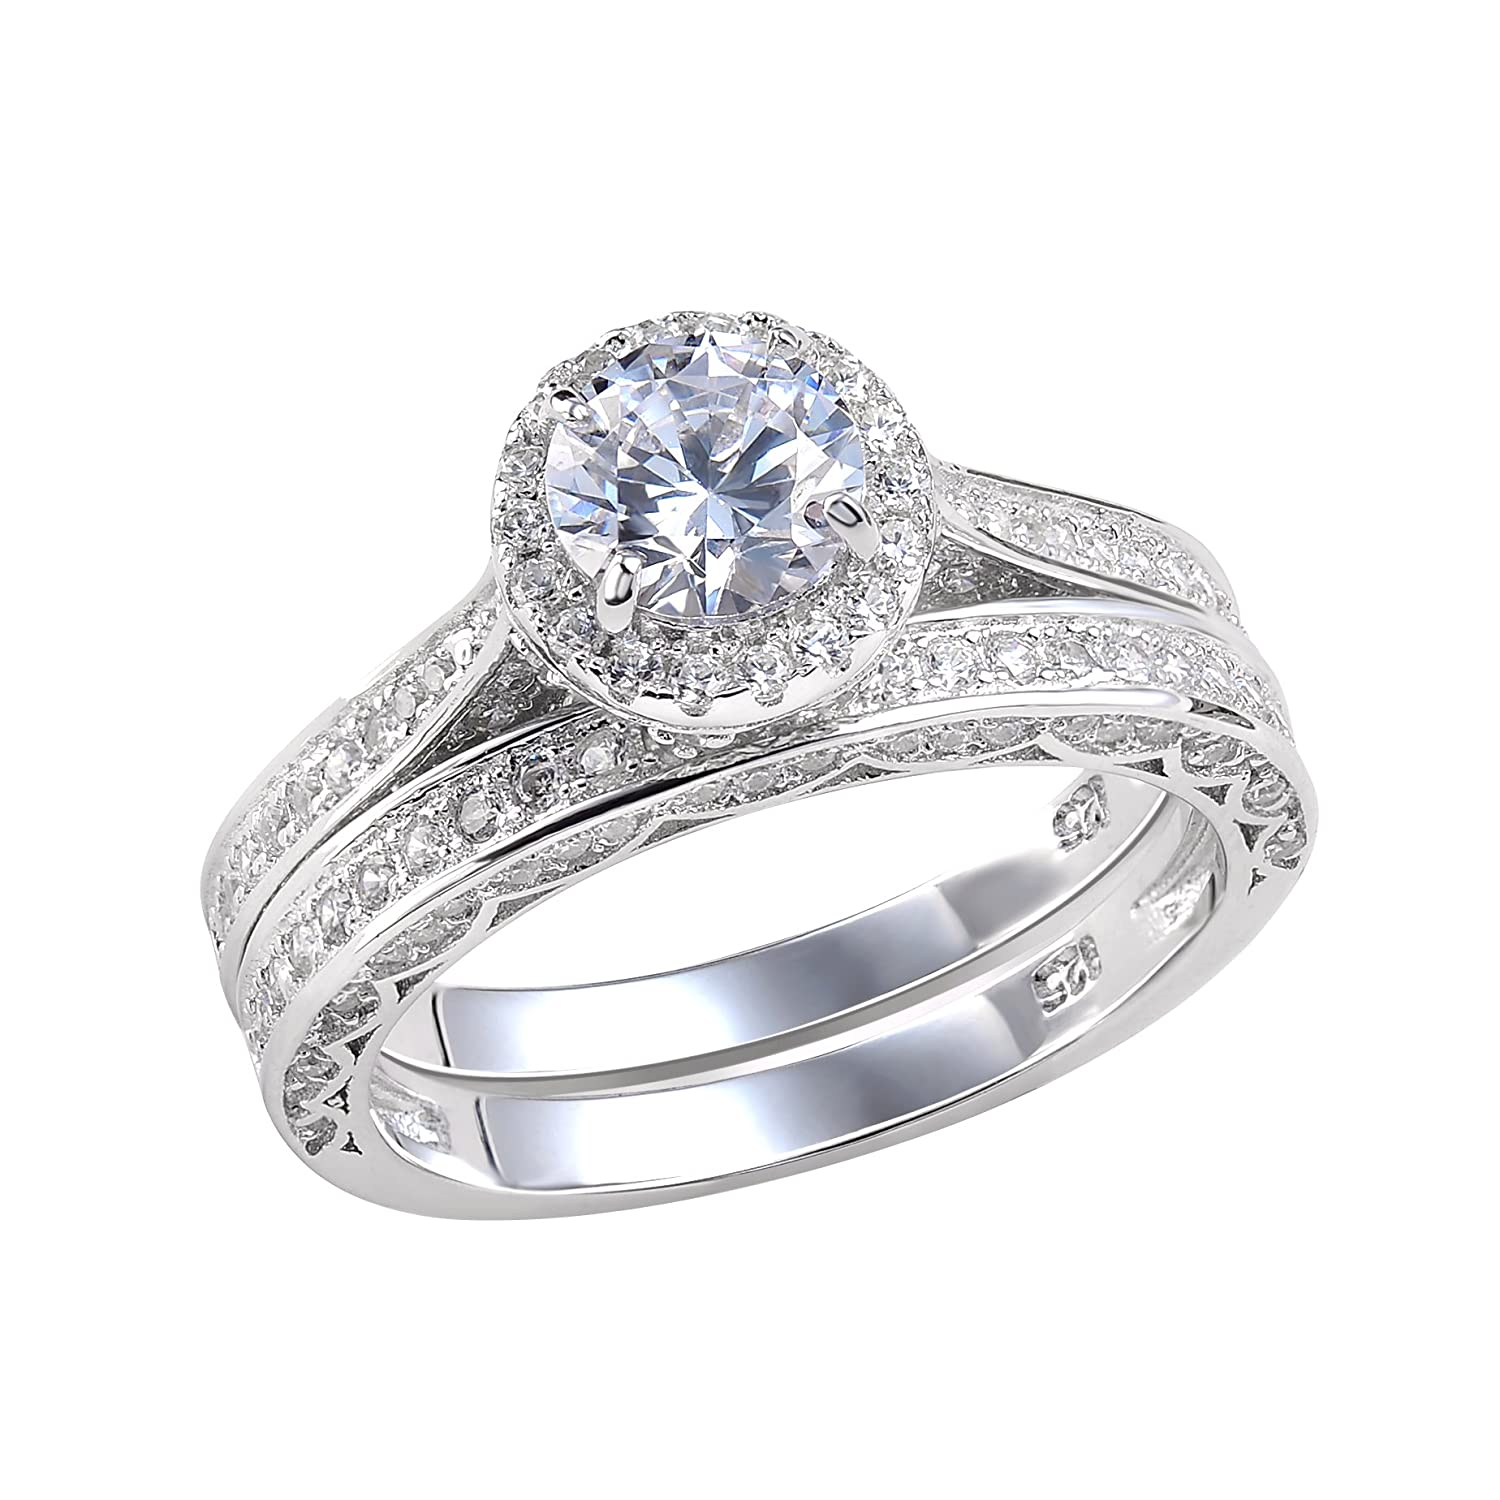 engagement best woman diamond multiple hbz fashion should bridal band rings ring wedding every index cuts know styles